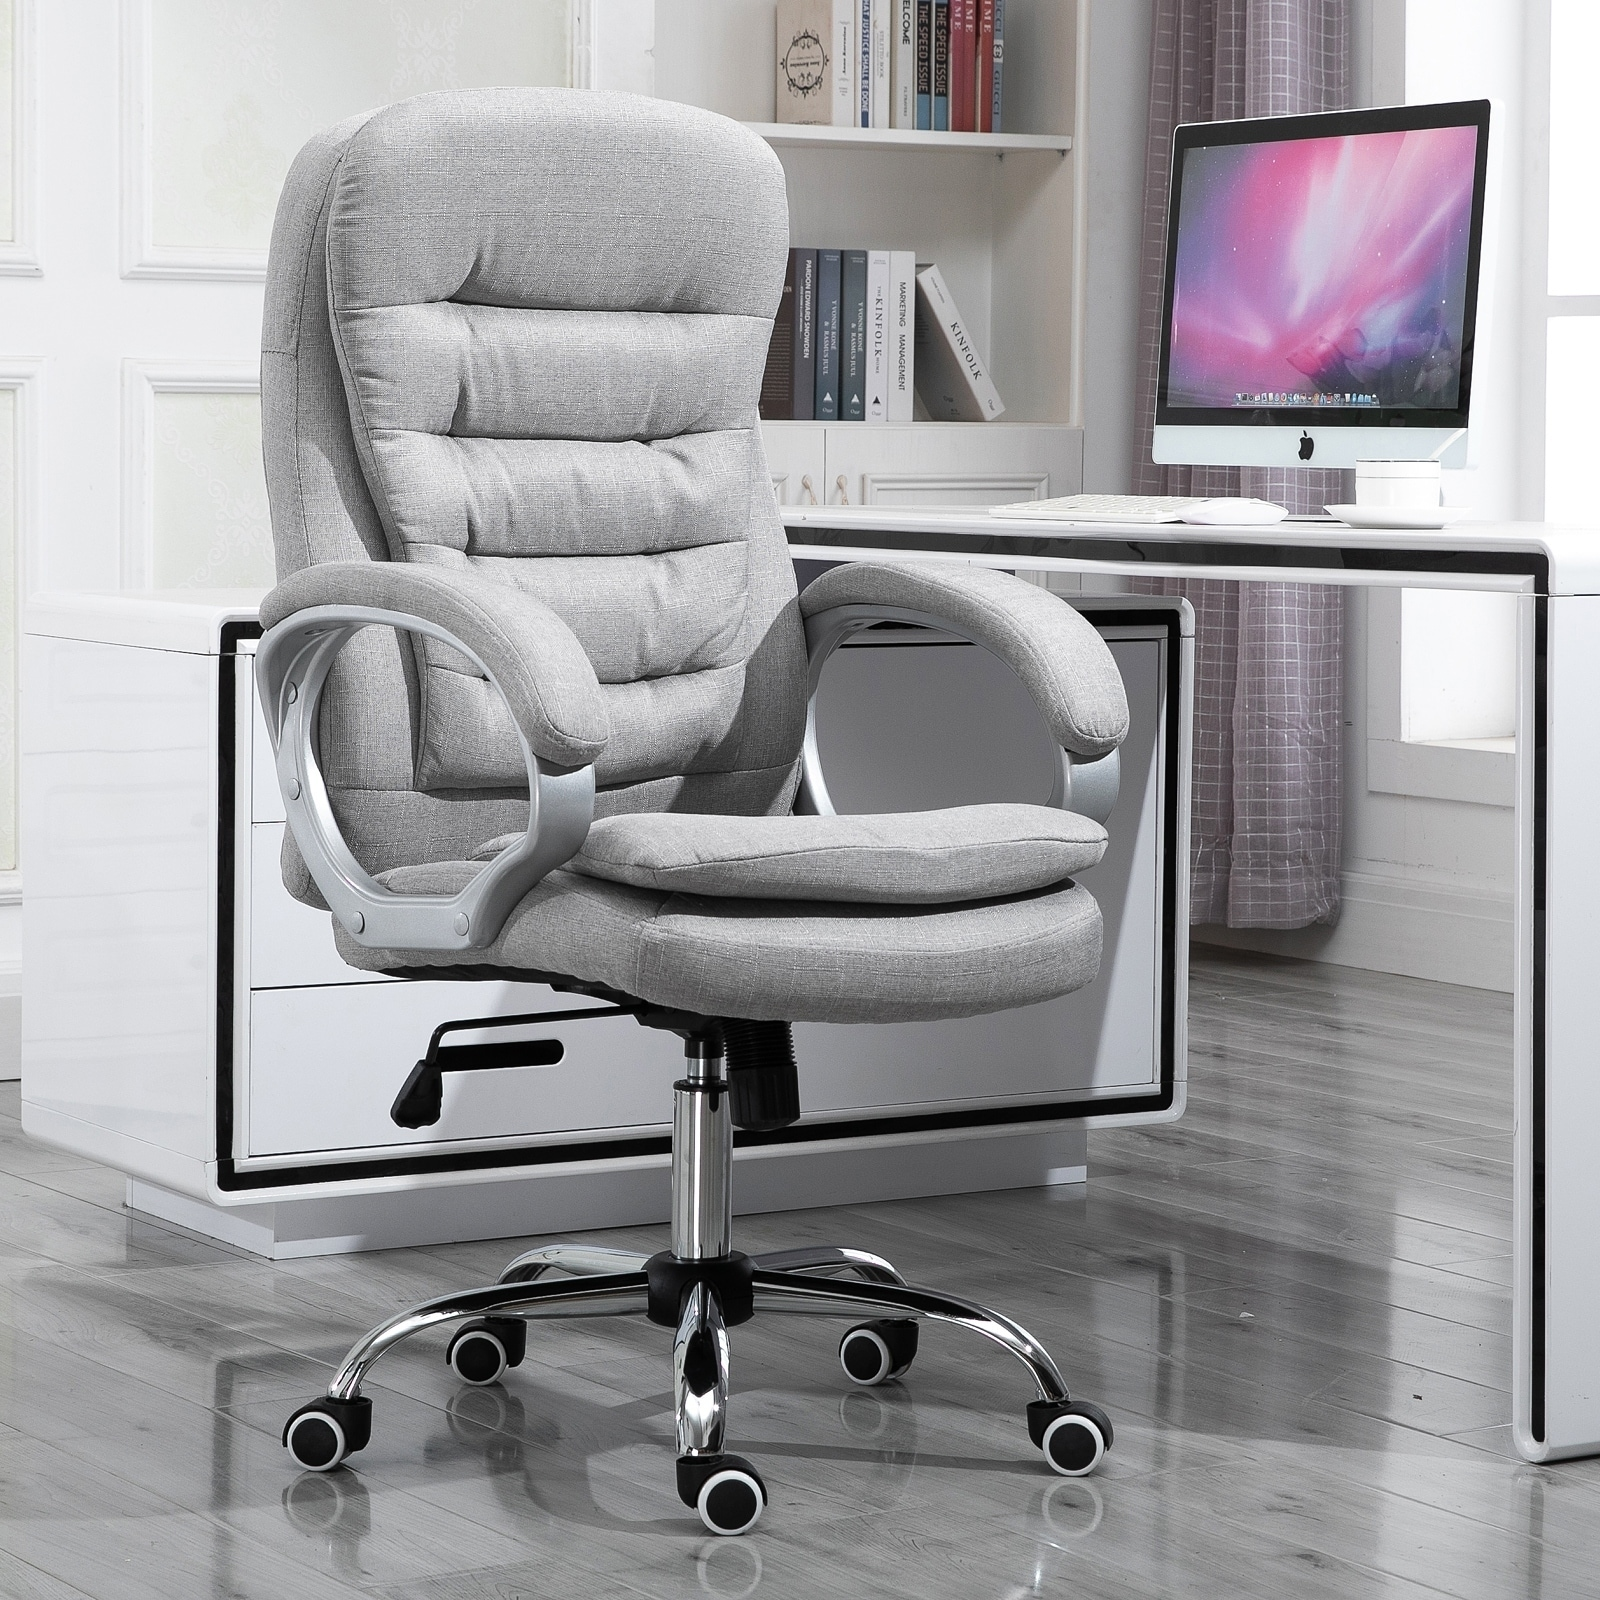 Shop Vinsetto Adjustable Height Ergonomic High Back Home Office Chair With Armrests Grey On Sale Overstock 29863348